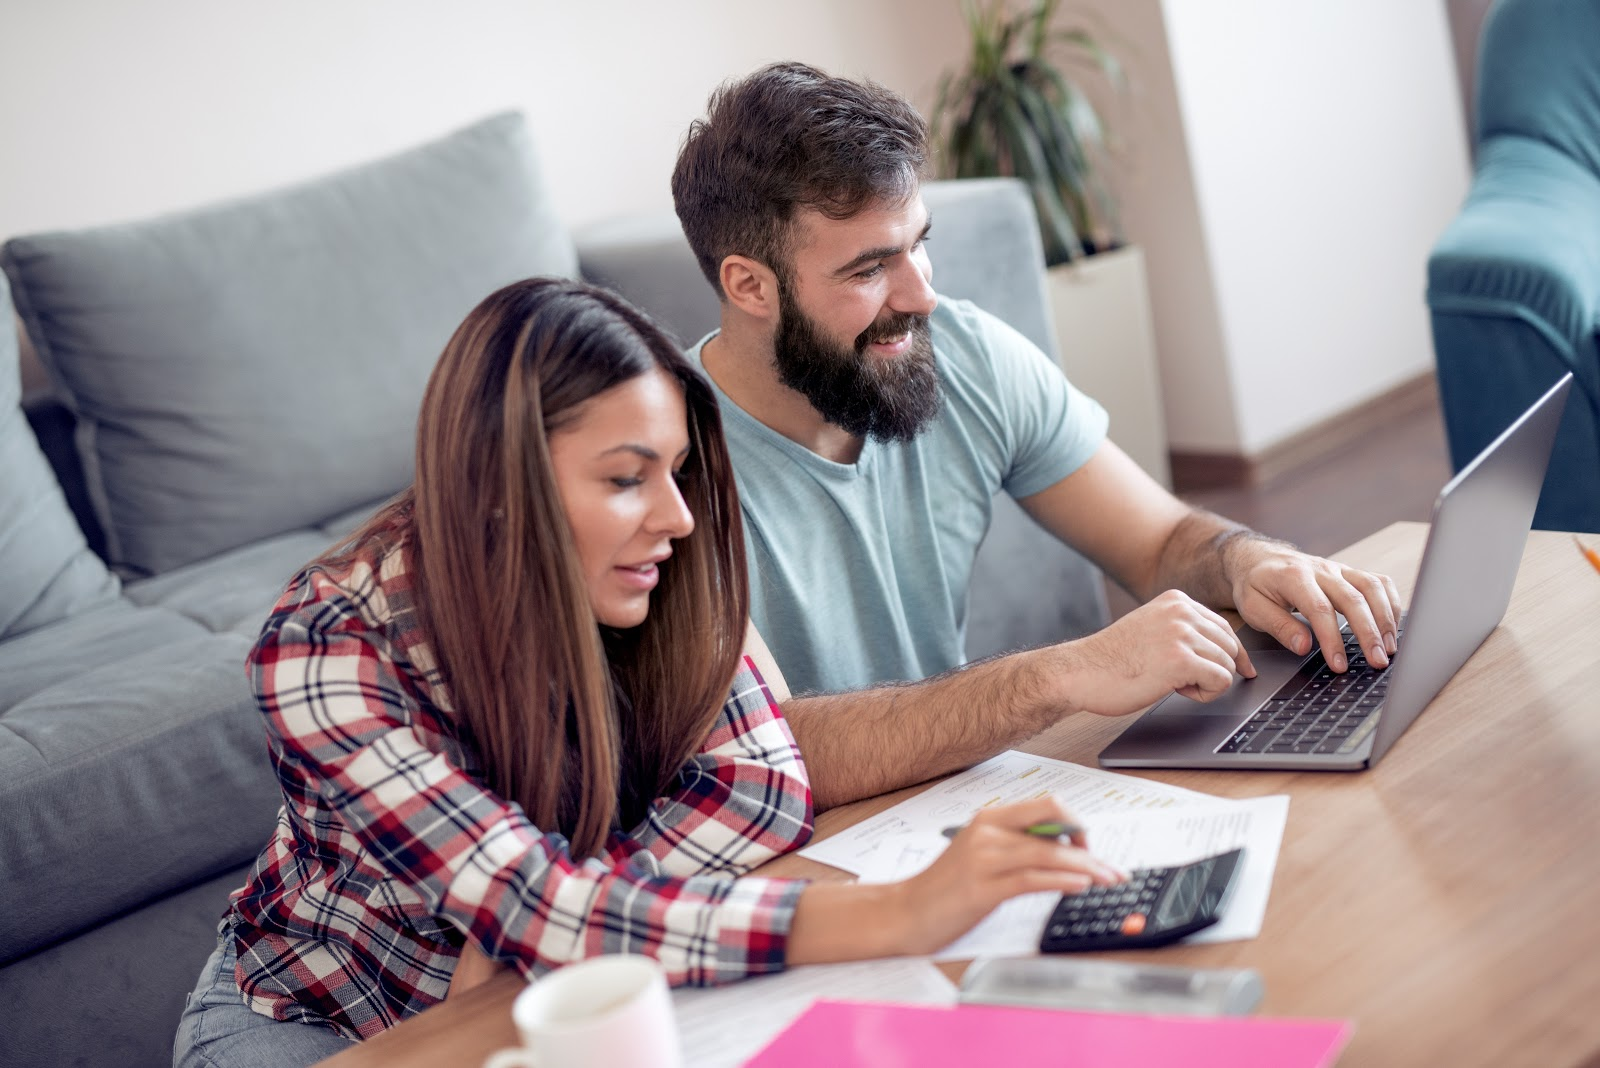 How to become debt-free: A couple uses a calculator and laptop to review their finances